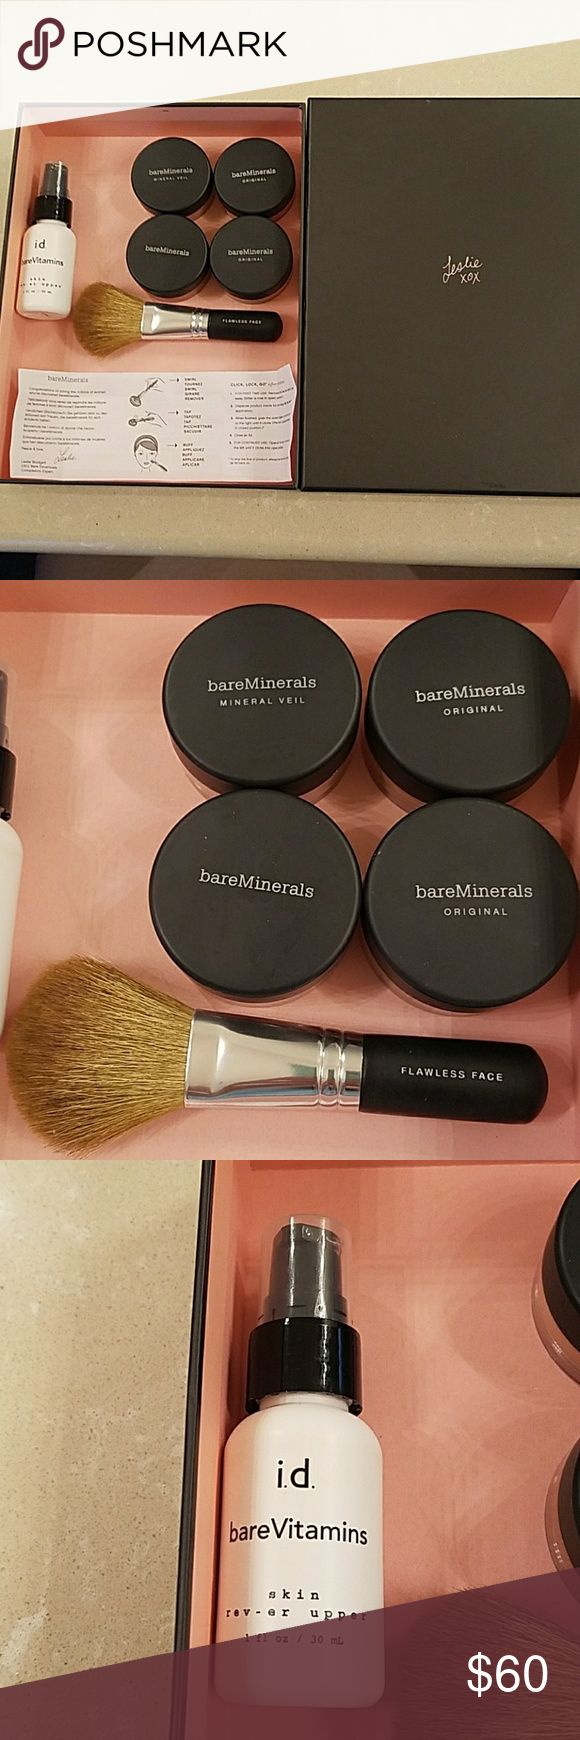 Bare Escentuals Starter Kit (4) Powders only used a few times (Tinted Mineral Veil, Warmth, Tan N30, Medium Tan C30), 1 Flawless Face Brush, 1 bottle bareVitamins  (skin rev-er upper, 1oz) with original box and basic instructions. Bare Escentuals Makeup Face Powder